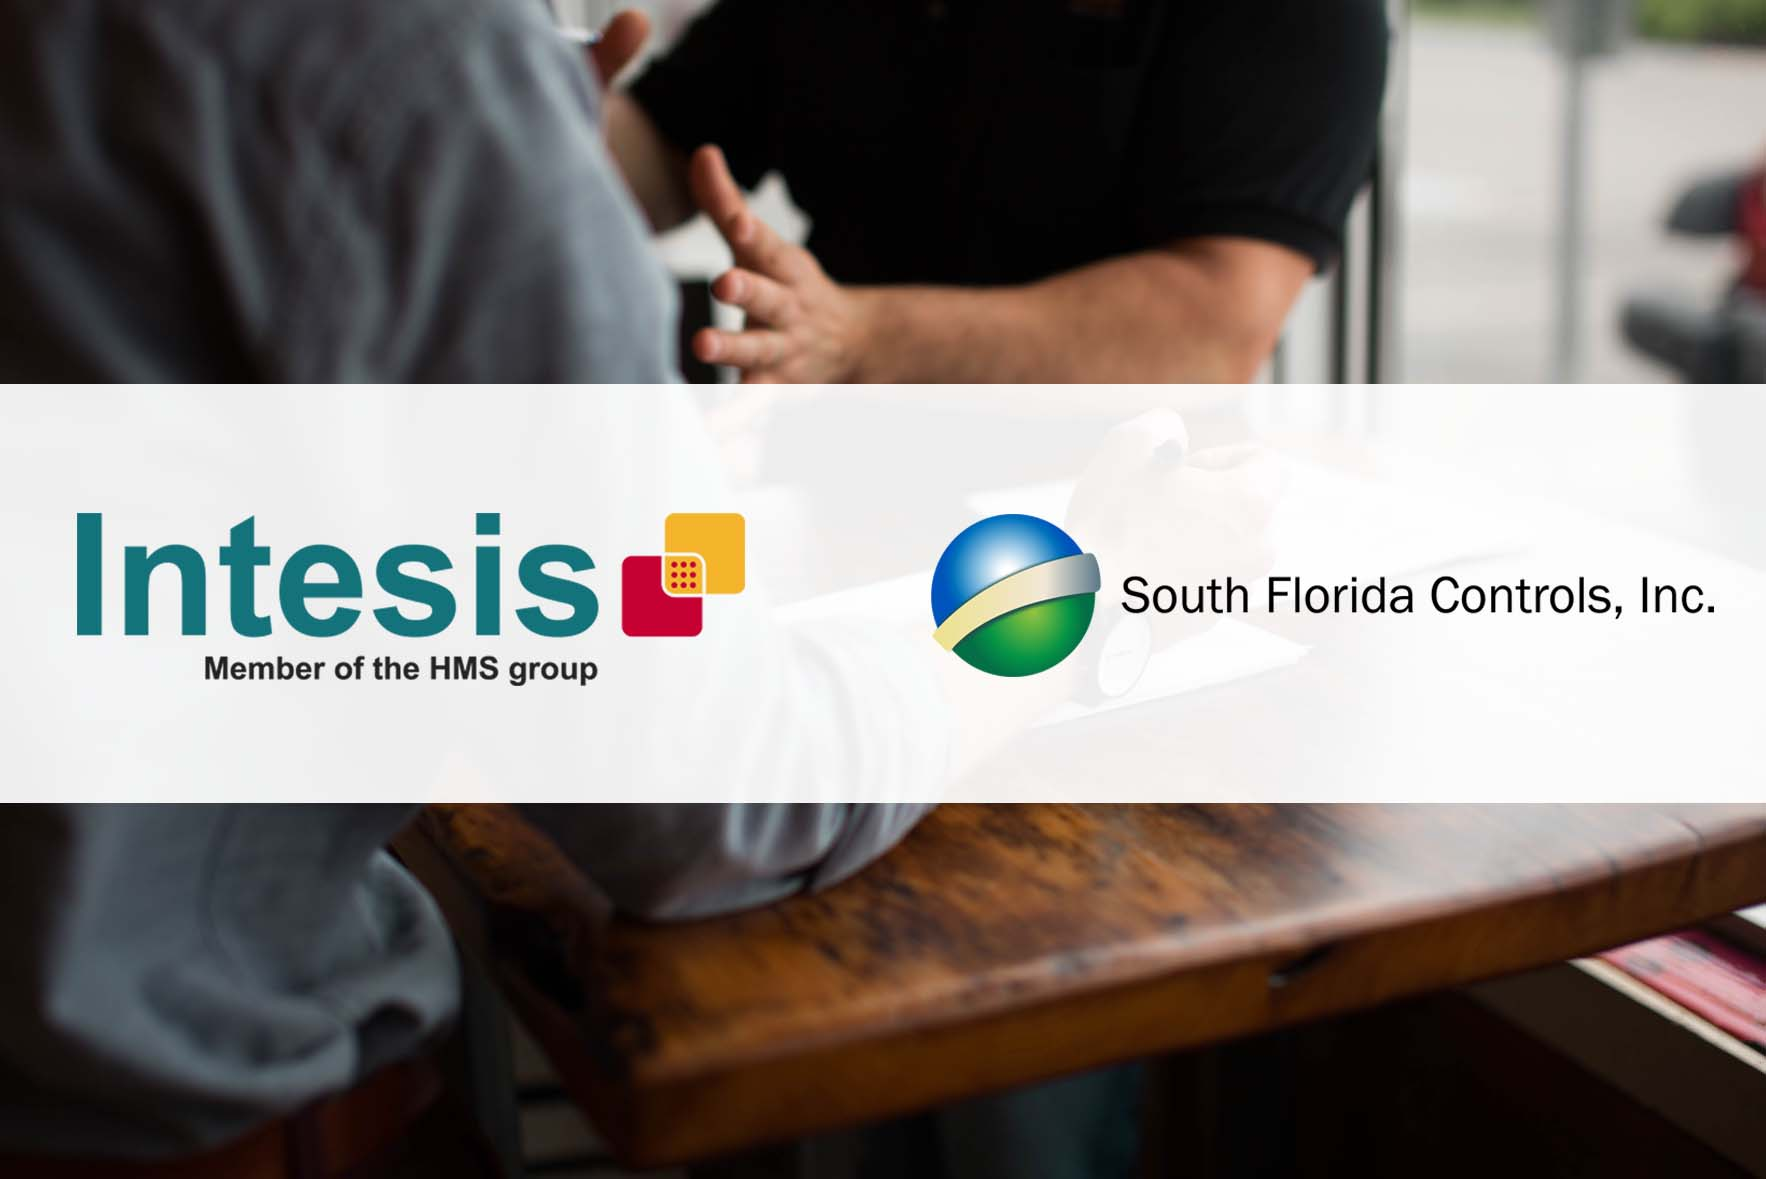 intesis-software-announces-an-exciting-new-partnership-with-south-florida-controls